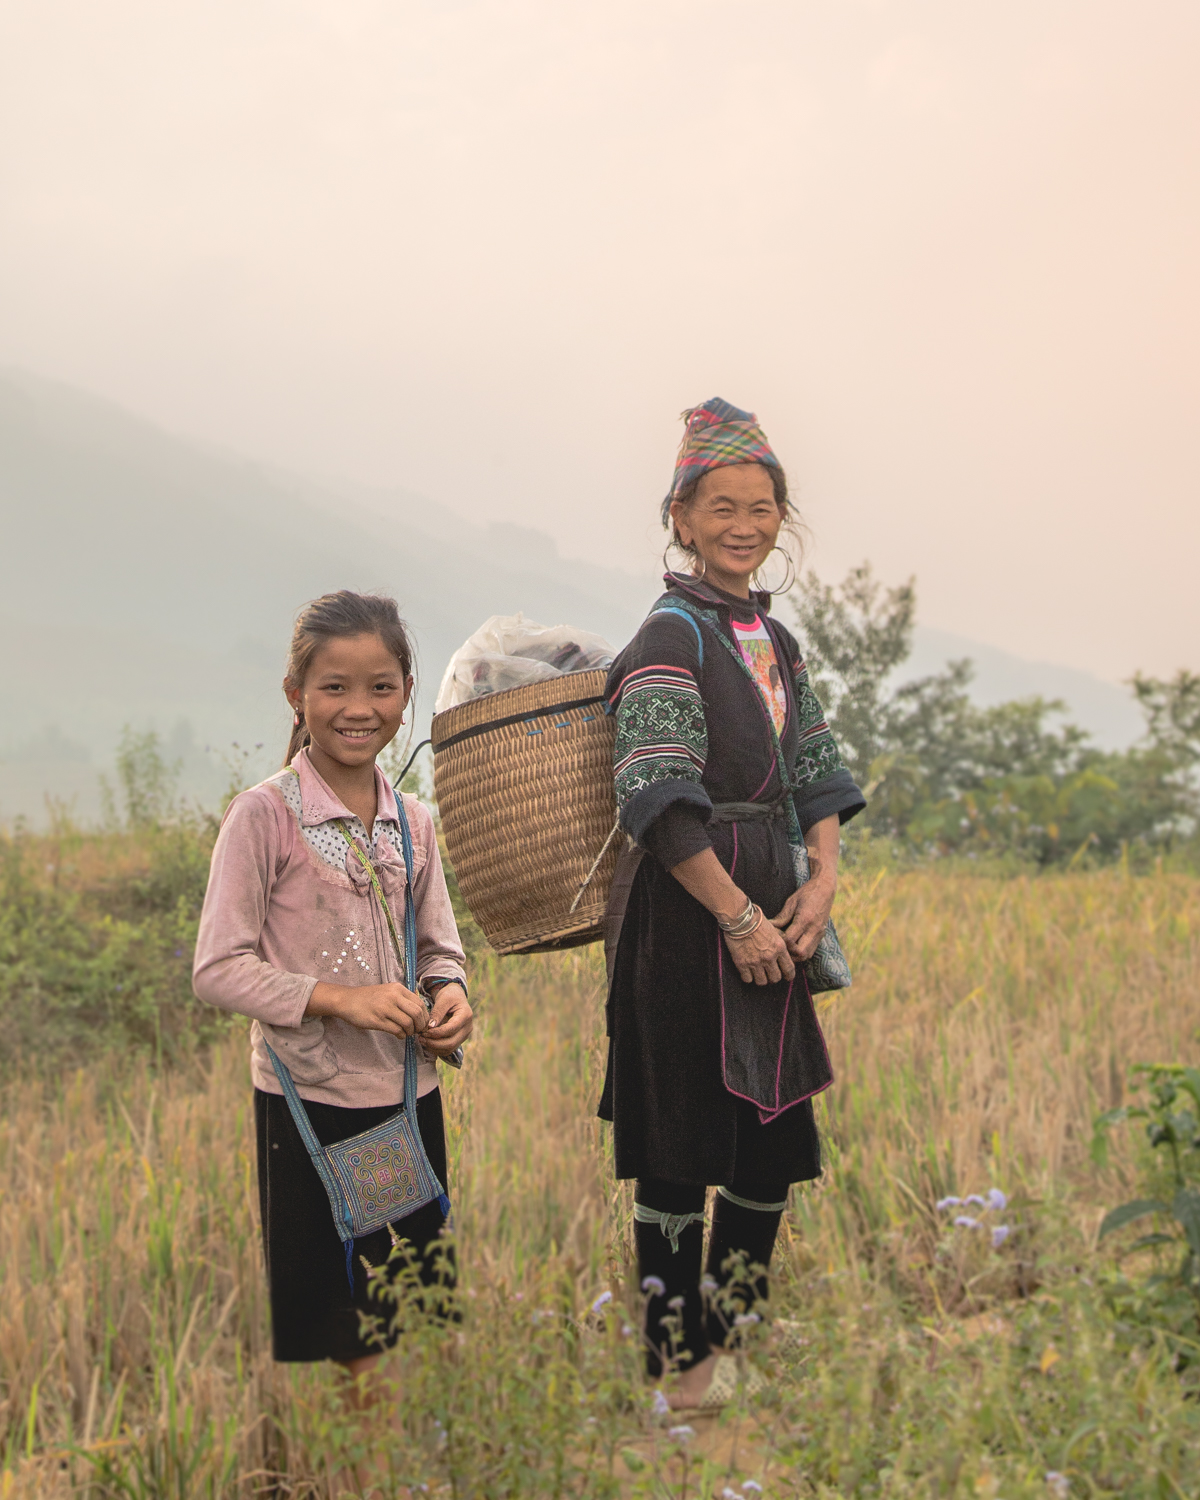 These were our guides who took us on a really enjoyable hike, making Sapa not so much a complete failure